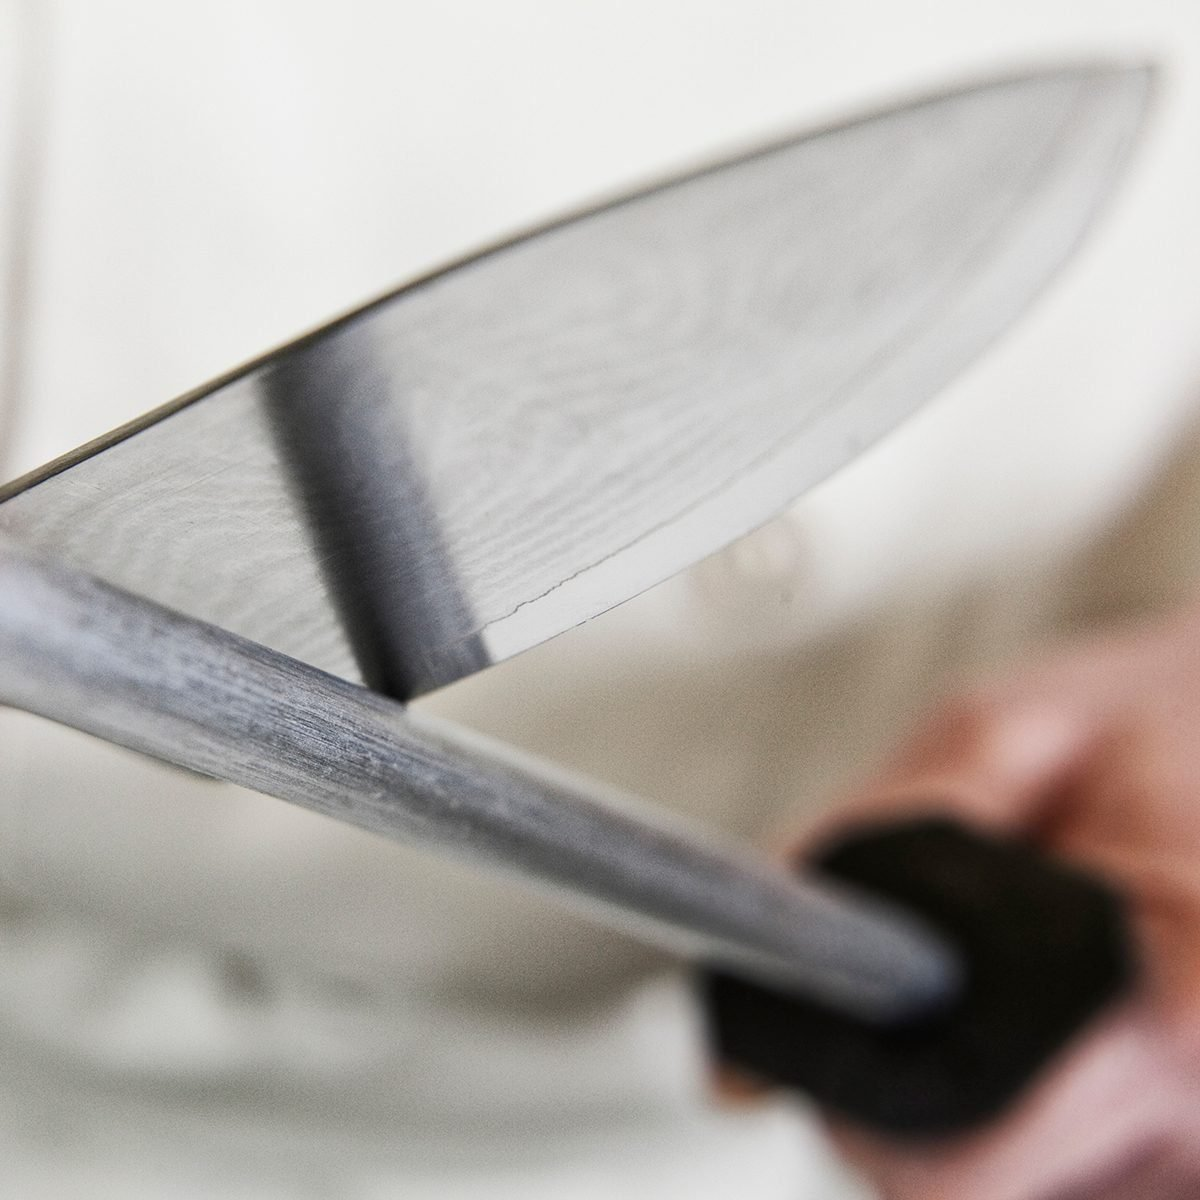 Close-up of a chef sharpening a large kitchen knife blade with a steel.